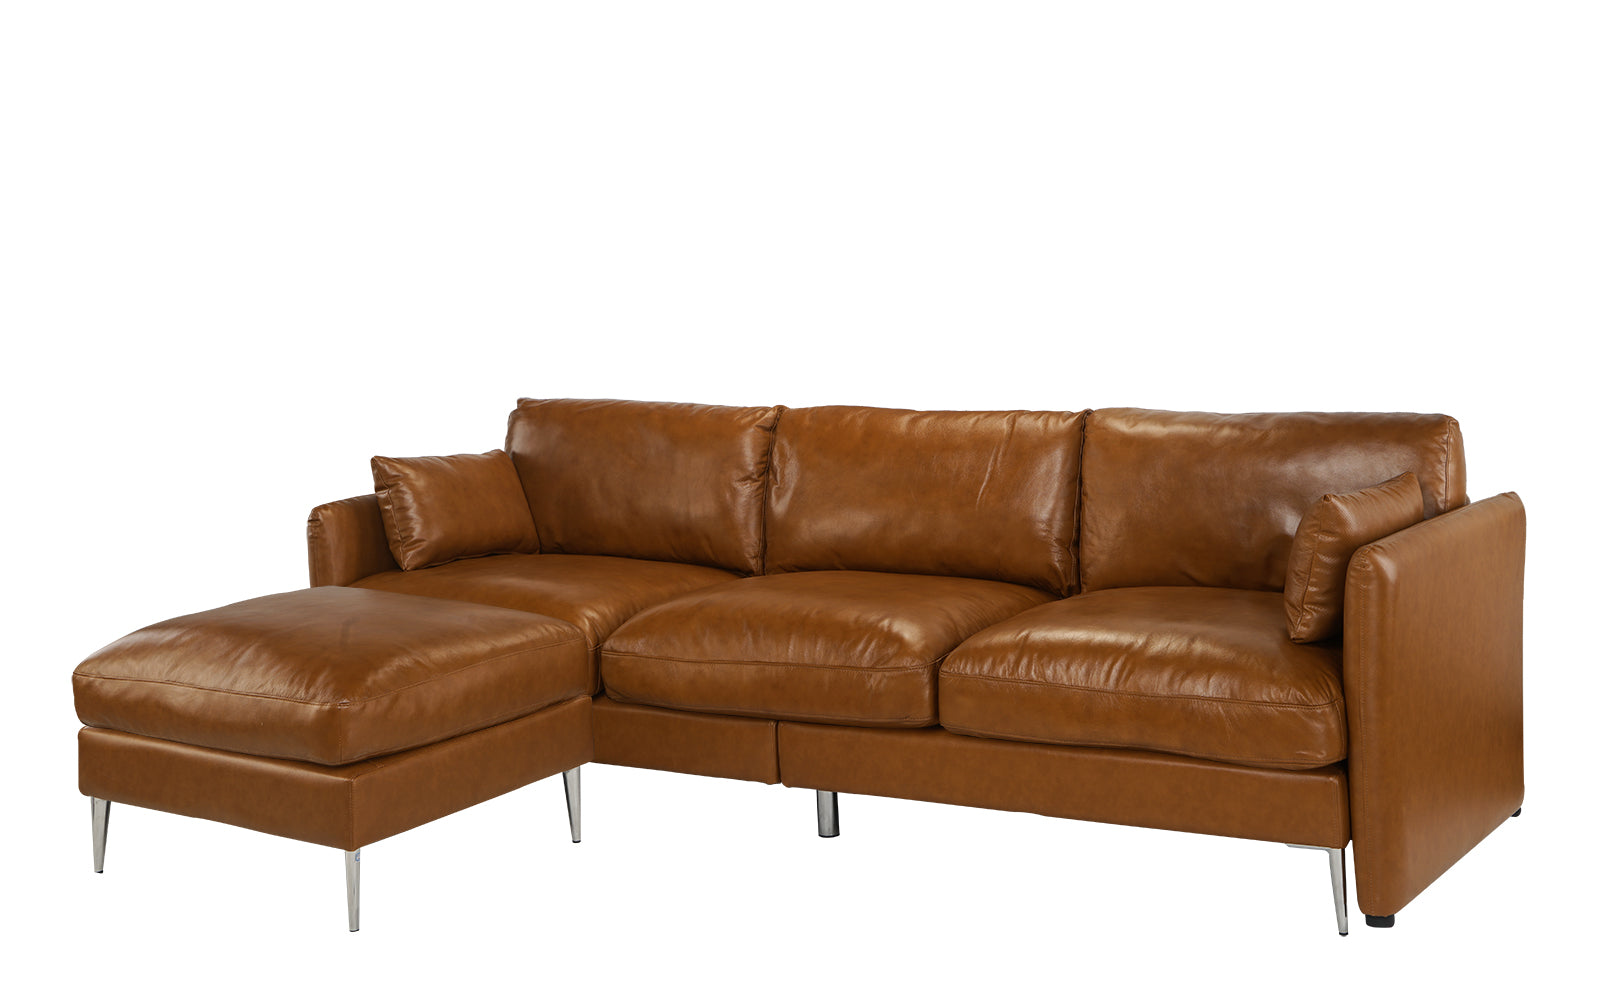 Admirable Jaxon Reversible Leather Sectional Sofa Gmtry Best Dining Table And Chair Ideas Images Gmtryco